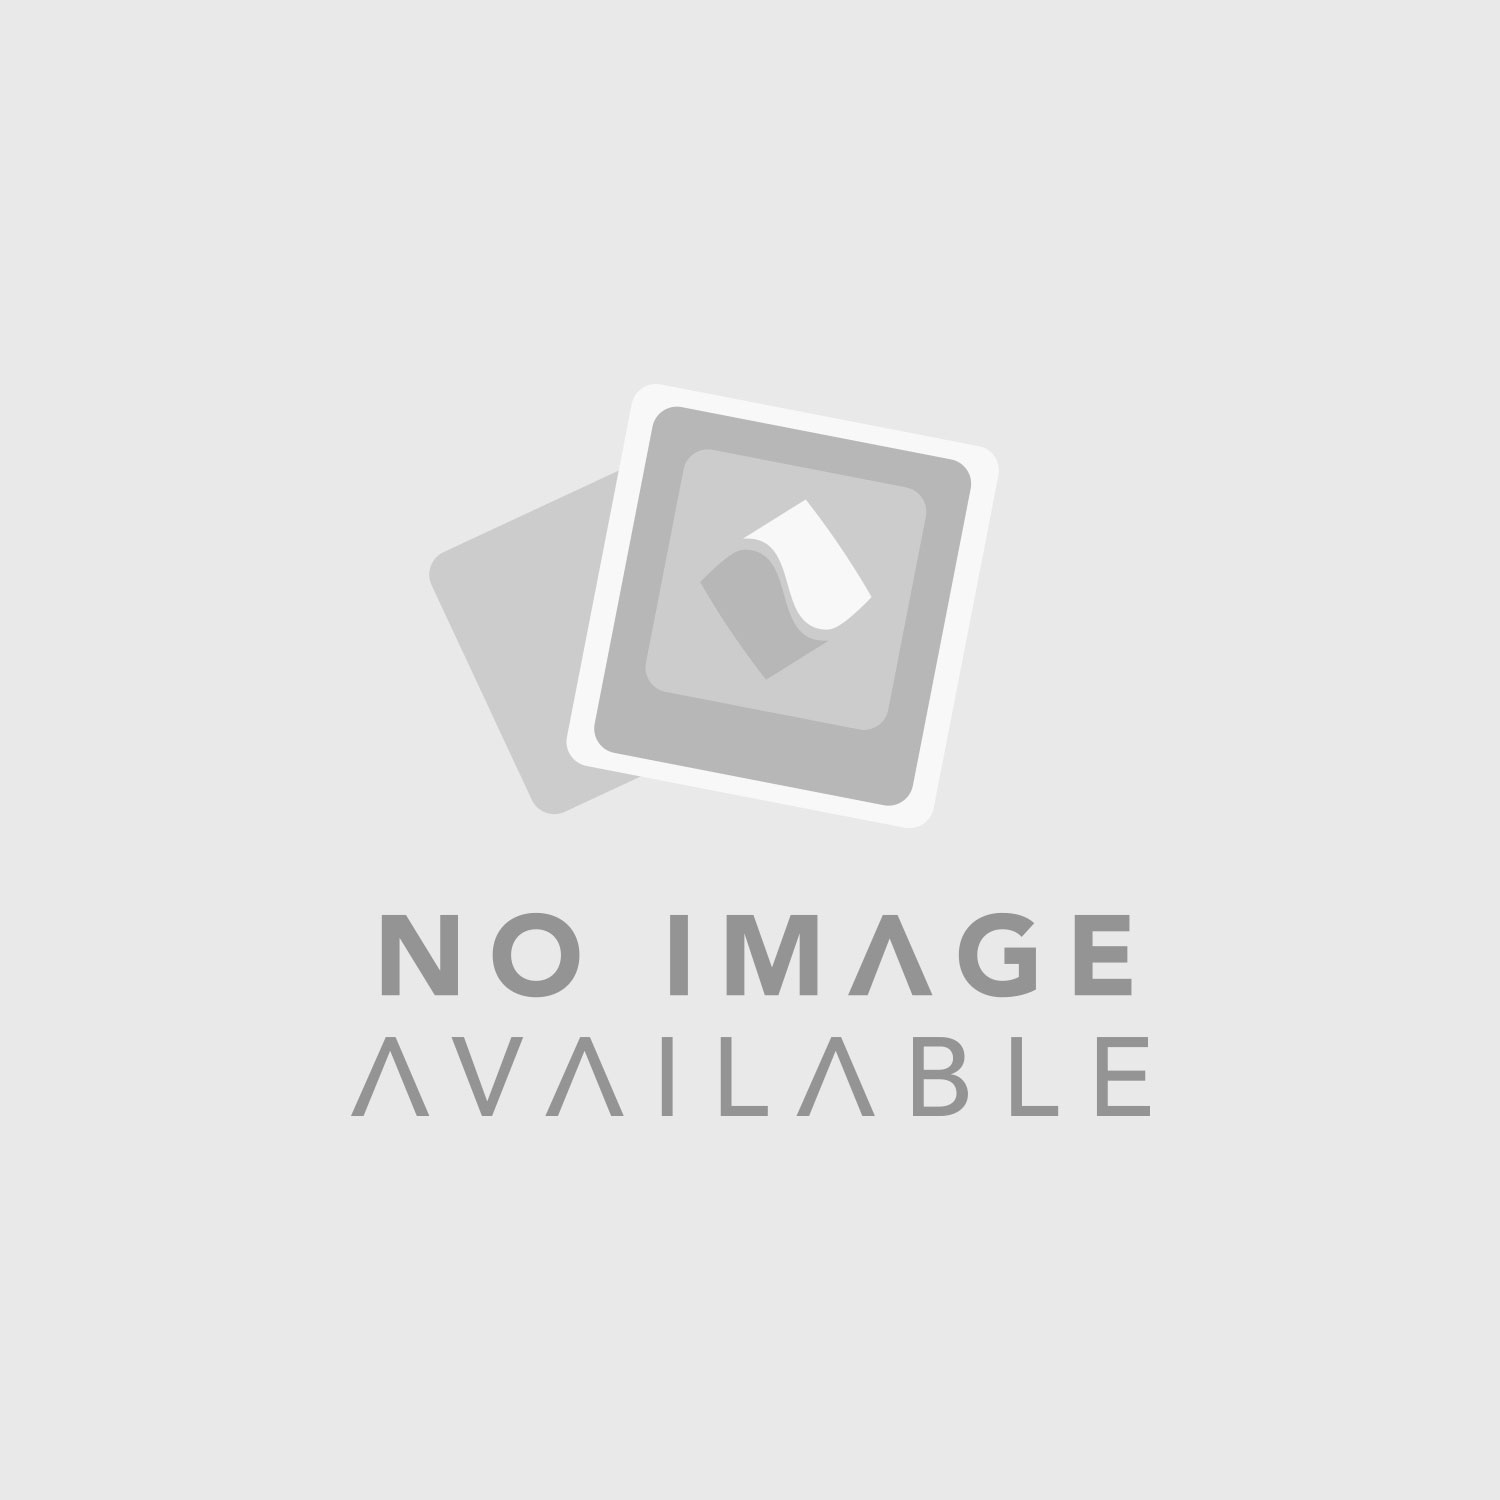 Neutrik 203M Single Gang Wallplate with Dual Male XLR